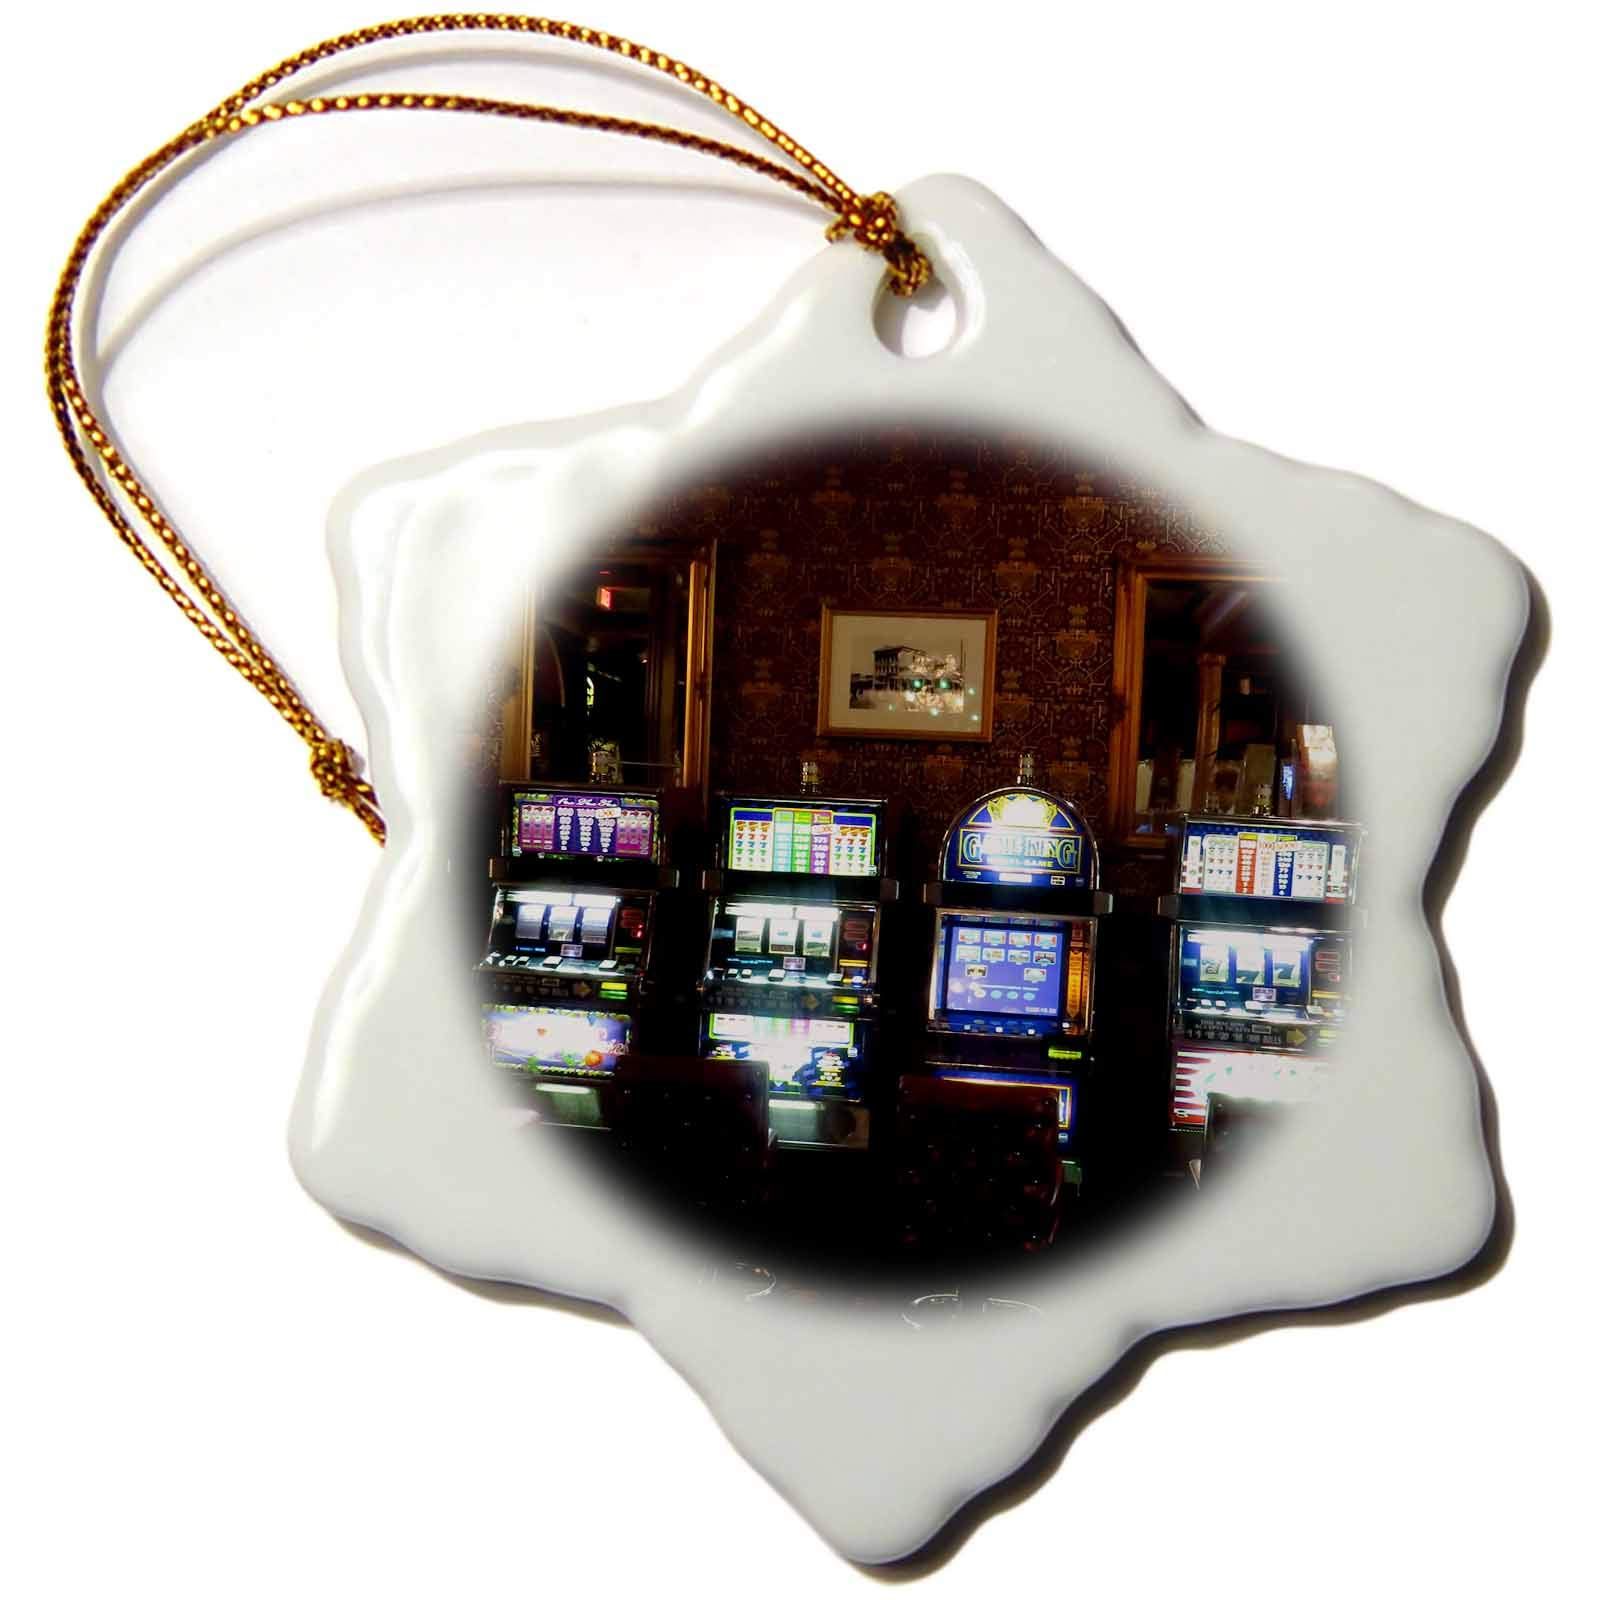 3dRose Jos Fauxtographee- Mizpah Casino - A Casino Inside The First Floor at The Mizpah Hotel with Slot Machines - 3 inch Snowflake Porcelain Ornament (ORN_291366_1)